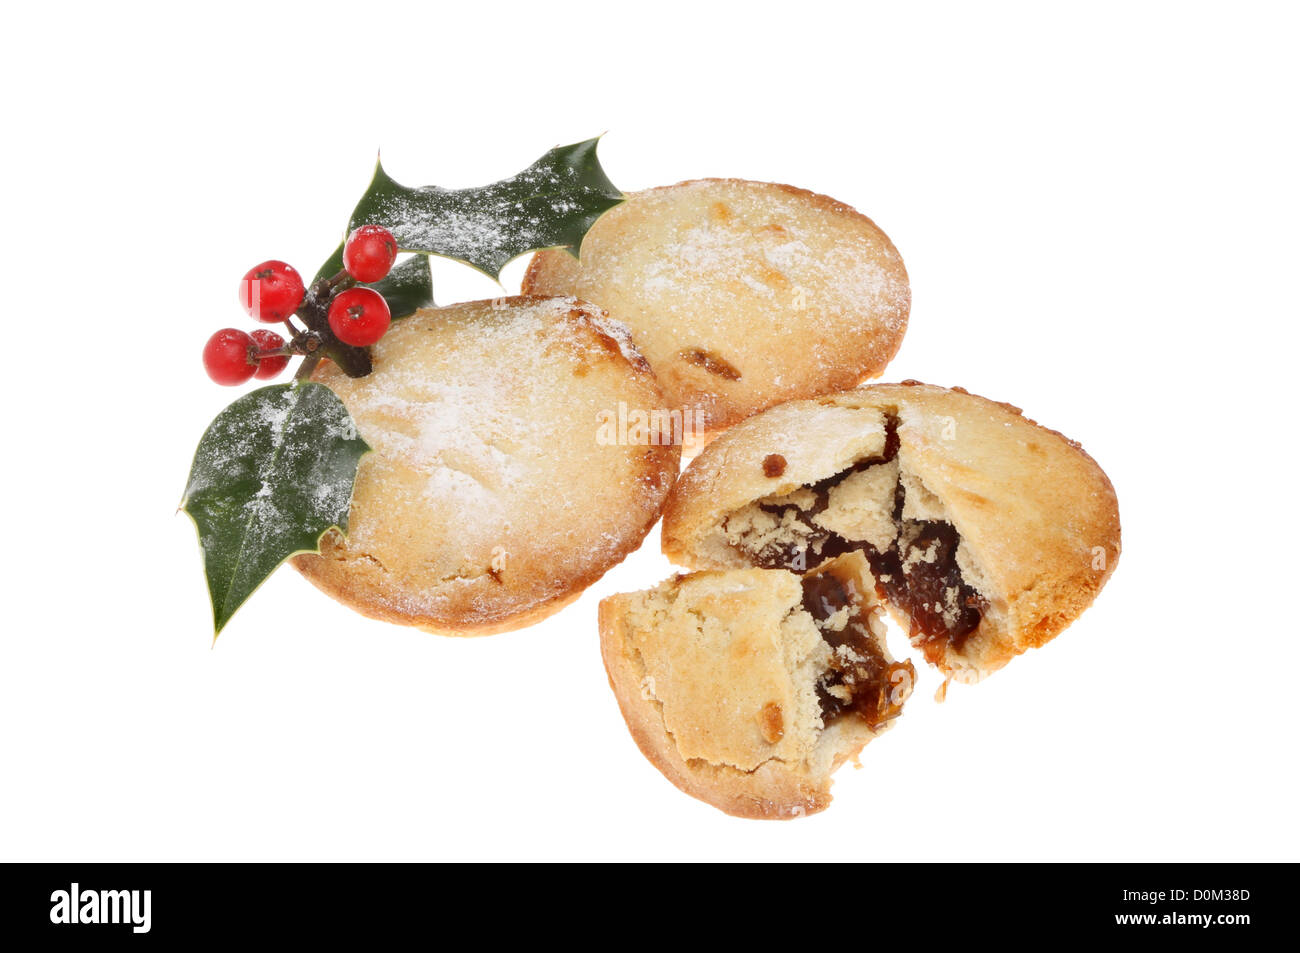 Group of mince pies dusted with icing sugar and decorated with a holly sprig isolated against white - Stock Image